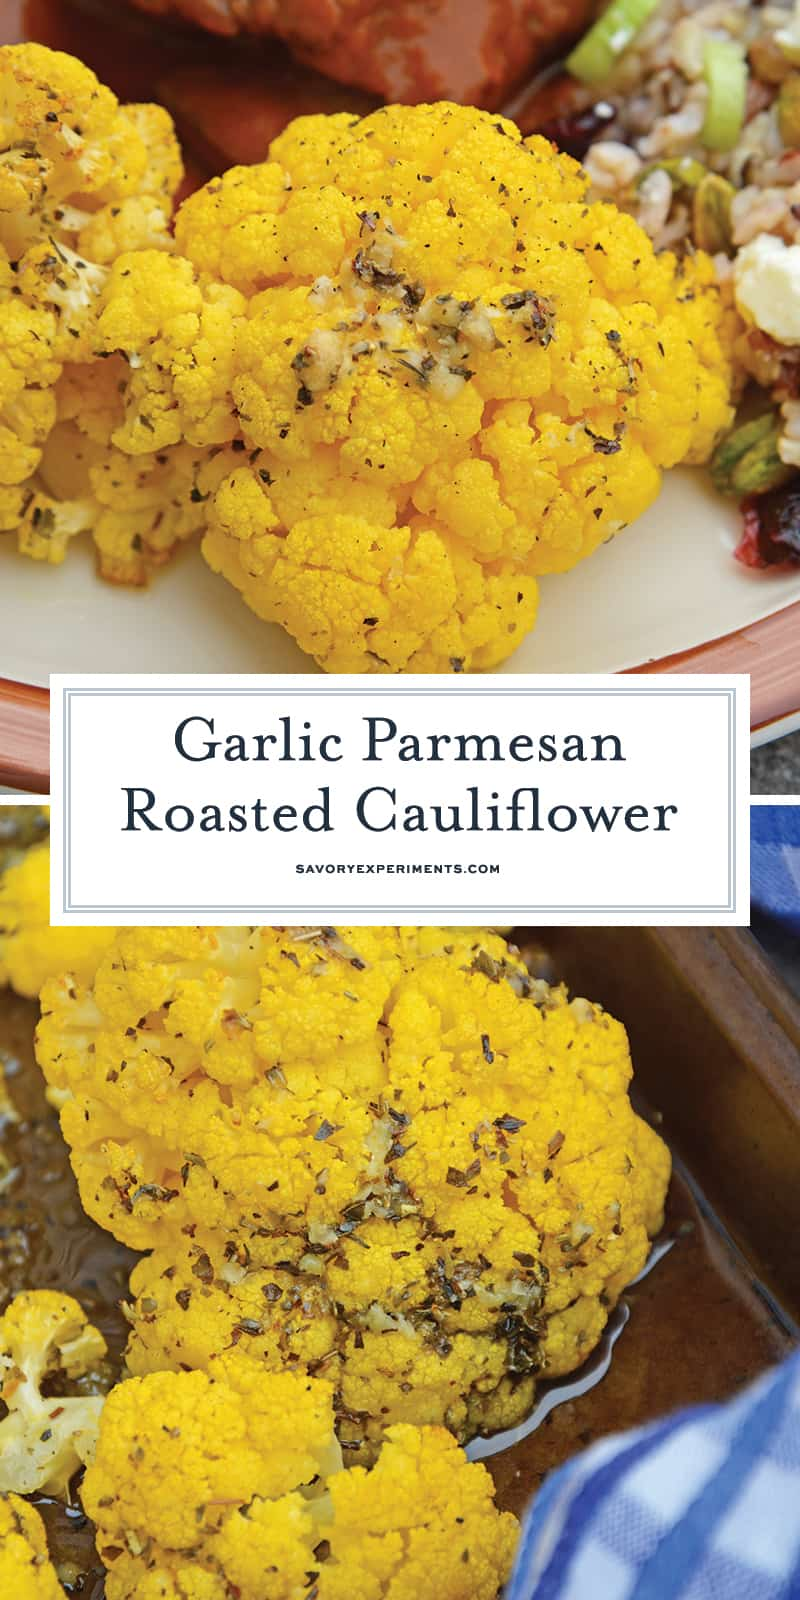 Garlic Parmesan Roasted Cauliflower is an easy cauliflower recipe using garlic and parmesan! A delicious and healthy side dish. #roastcauliflower #cauliflowerrecipes www.savoryexperiments.com